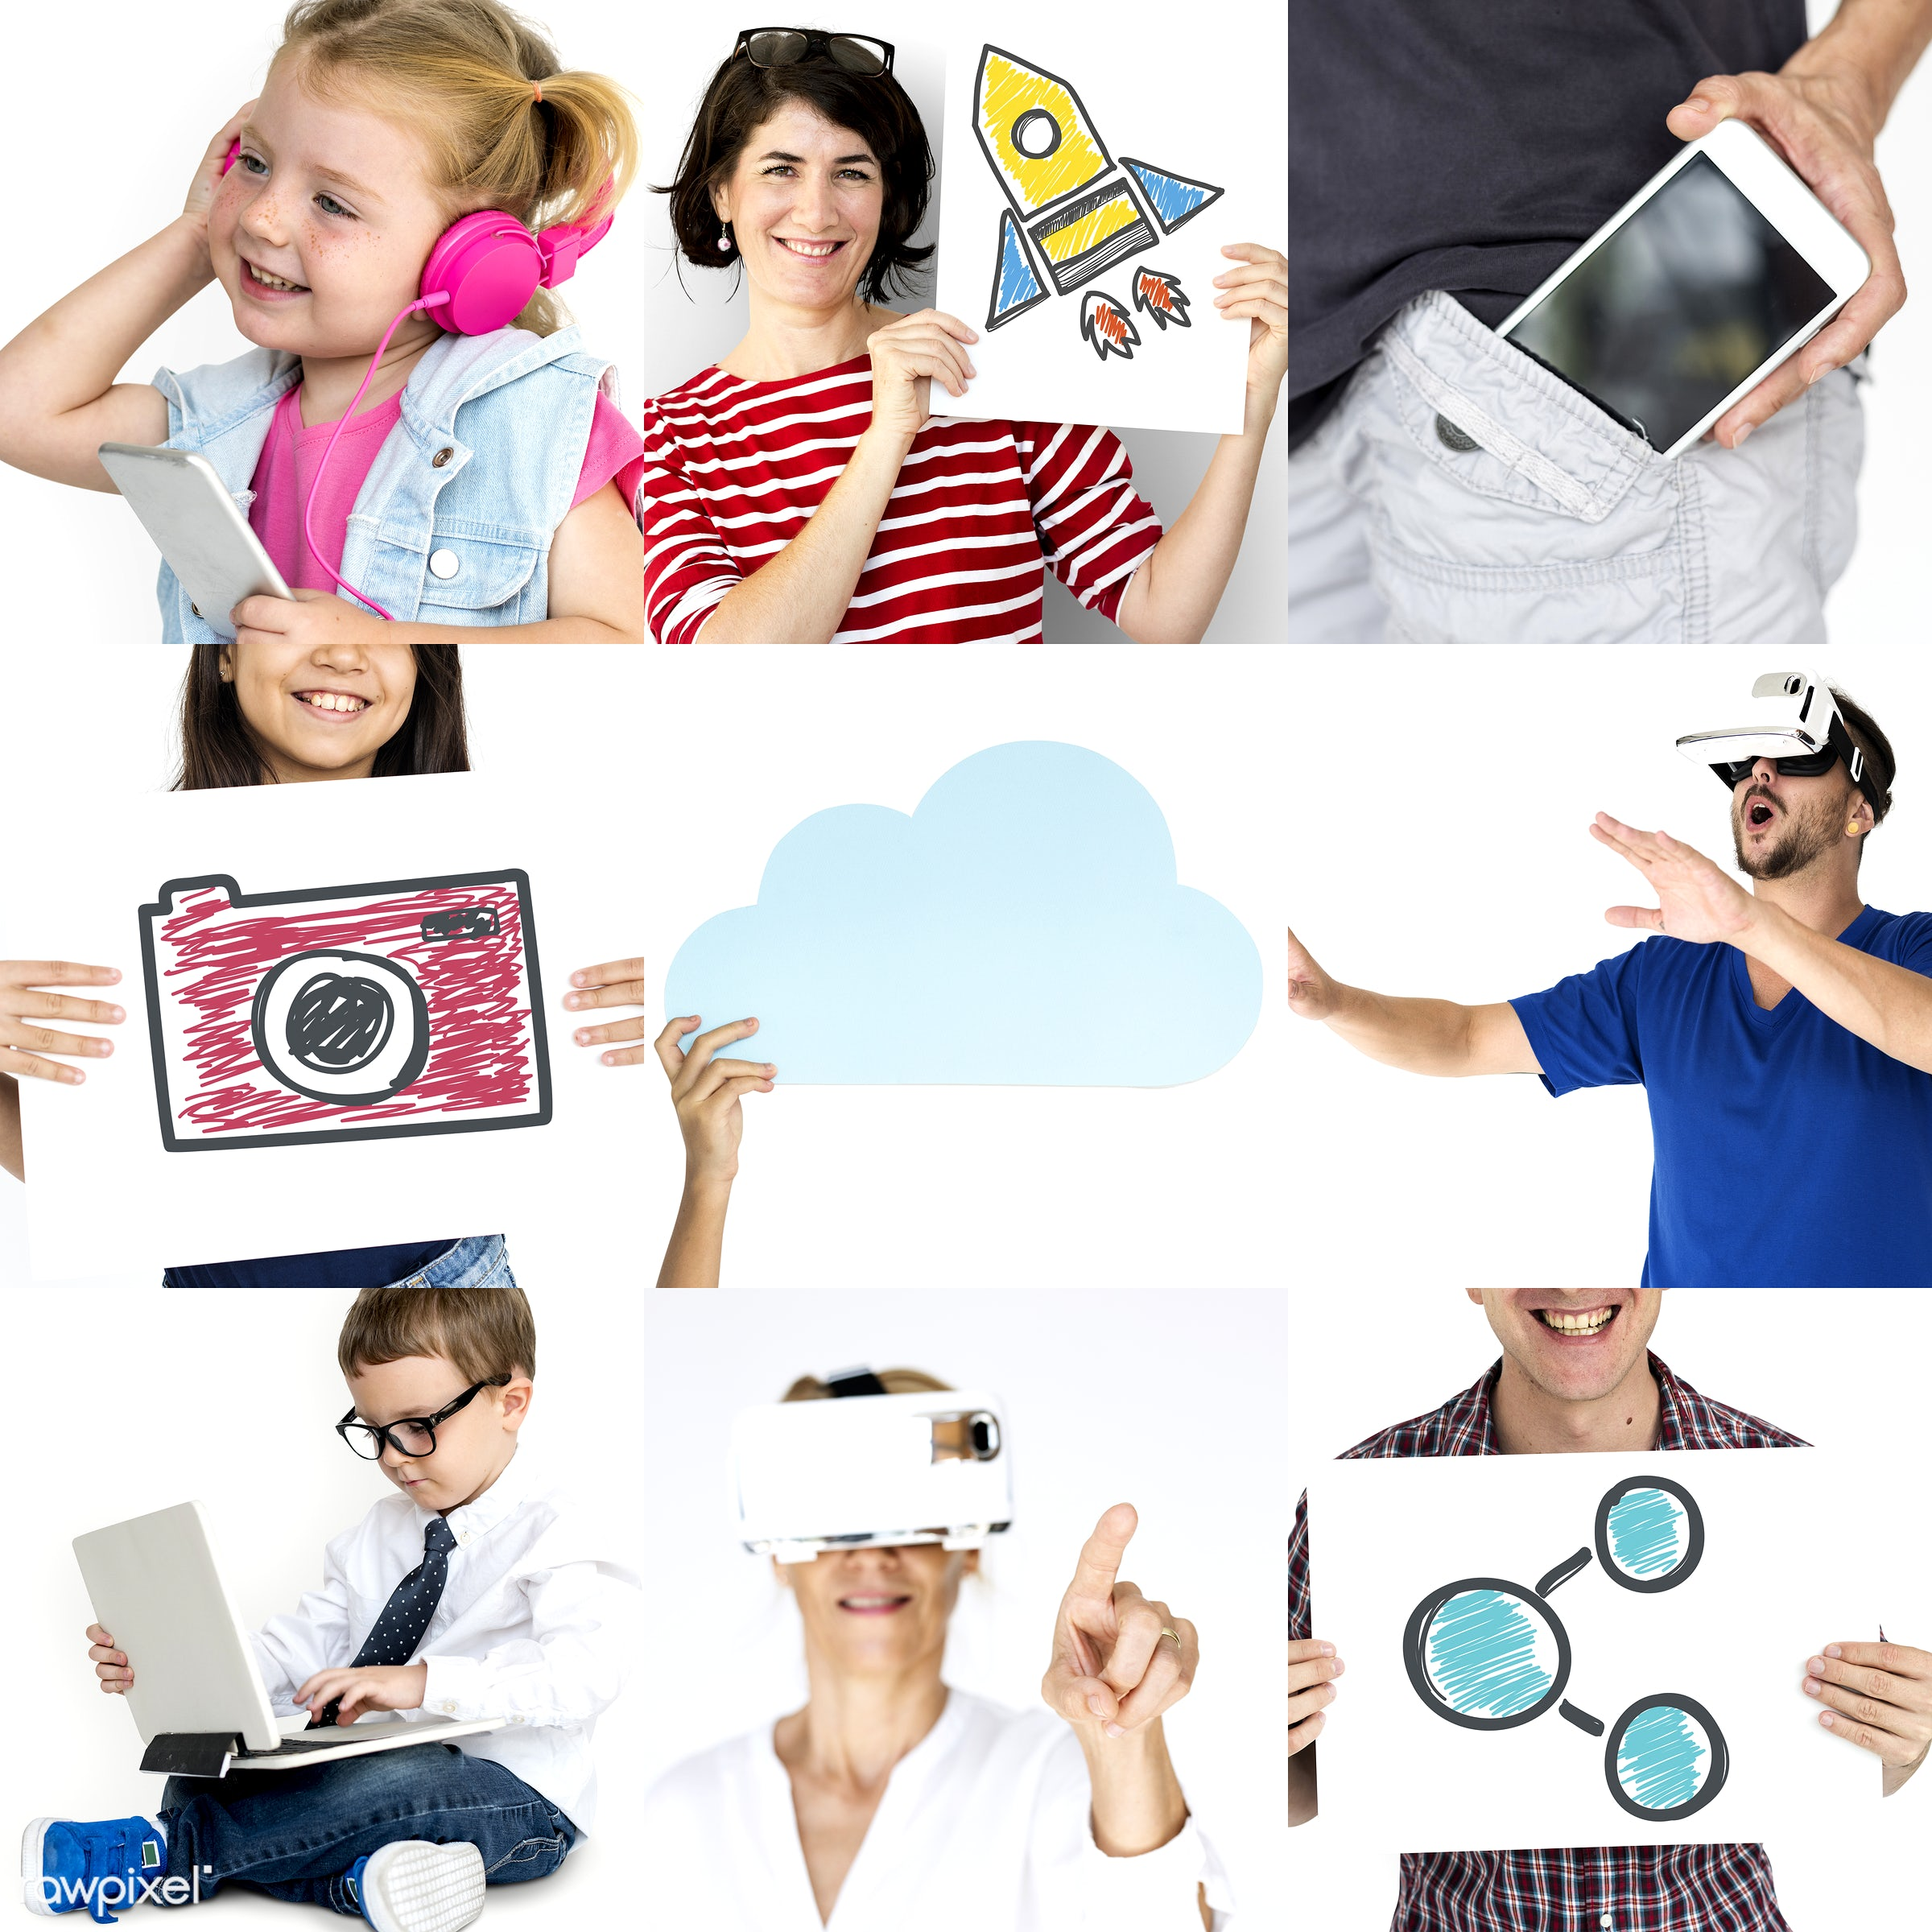 studio, using, person, phone, technology, download, people, kid, communicate, woman, lifestyle, laptop, cheerful, isolated,...